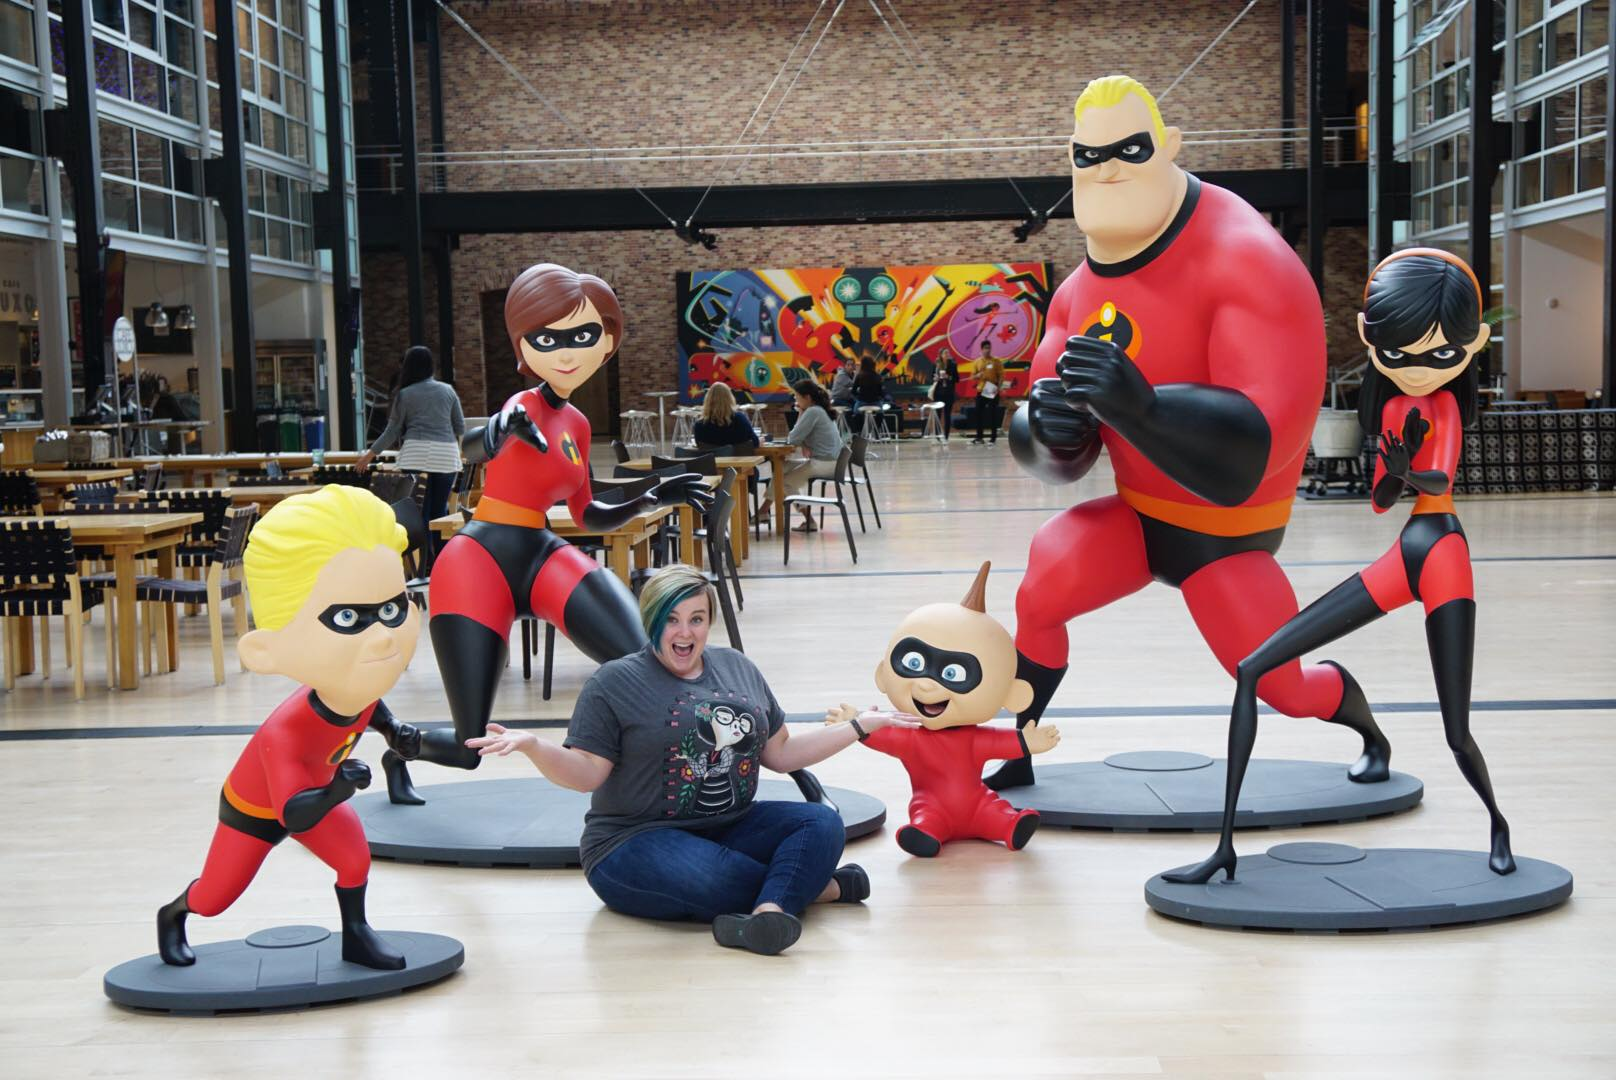 Pixar Statues at Pixar Animation Studios